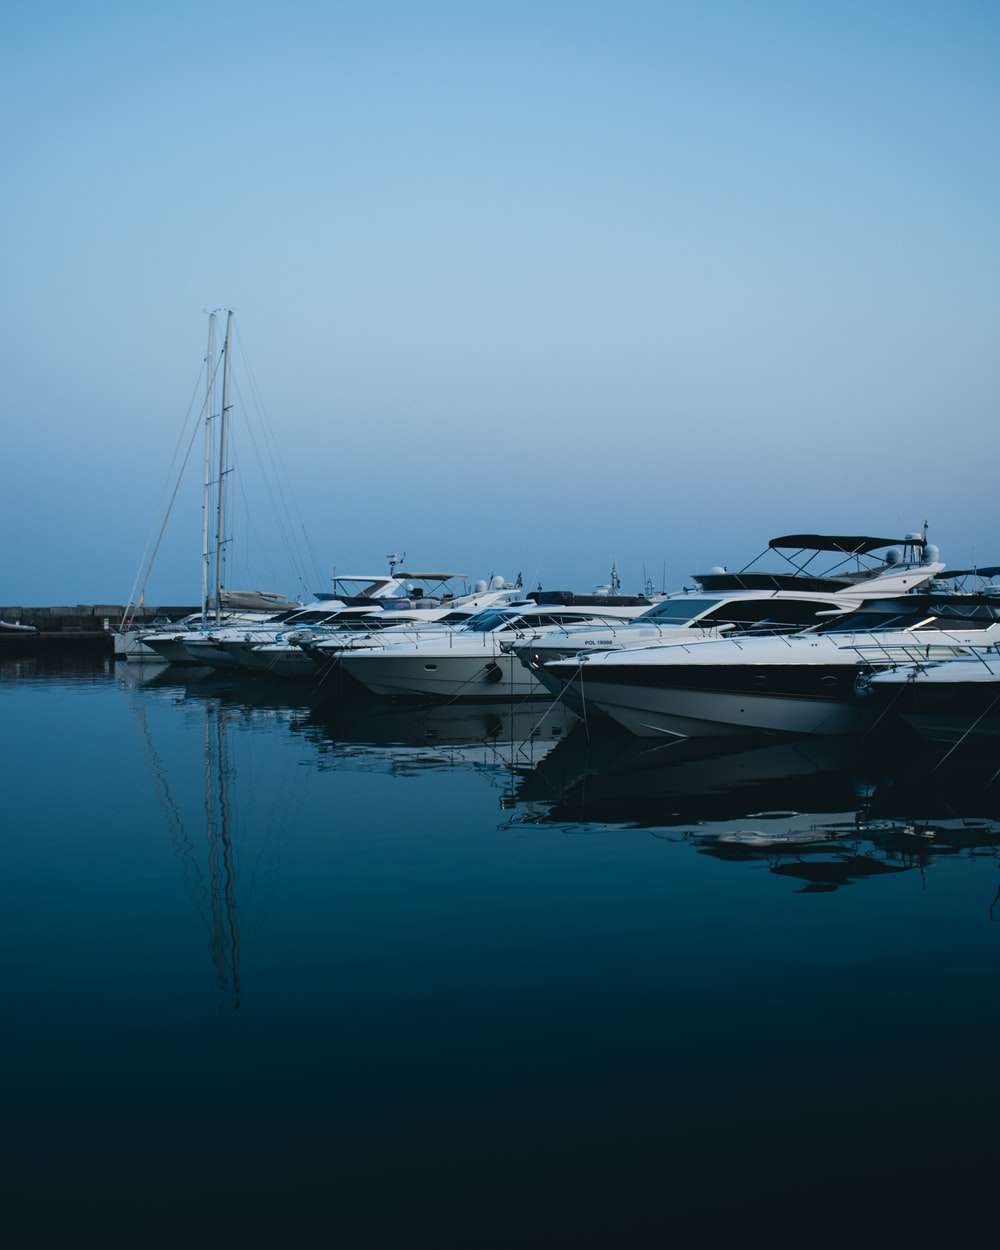 white and gray boats on body of water during daytime